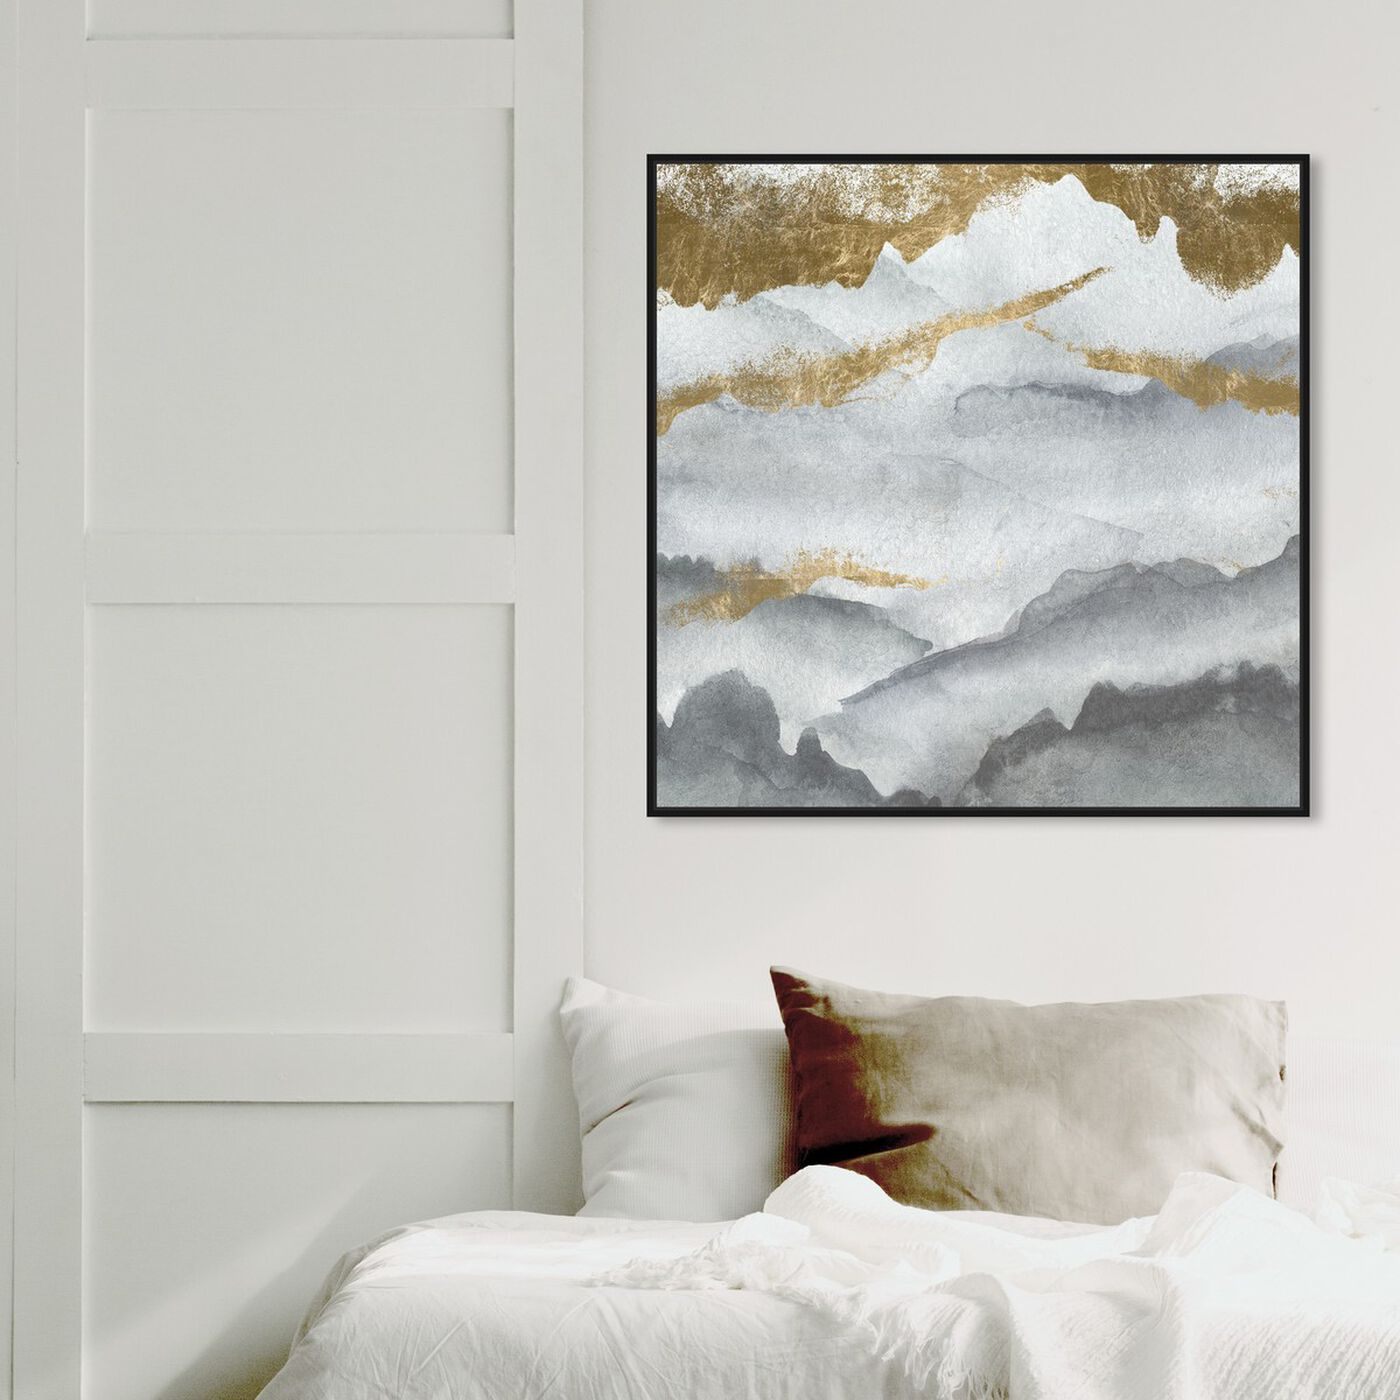 Hanging view of Tibet Mountains featuring abstract and watercolor art.